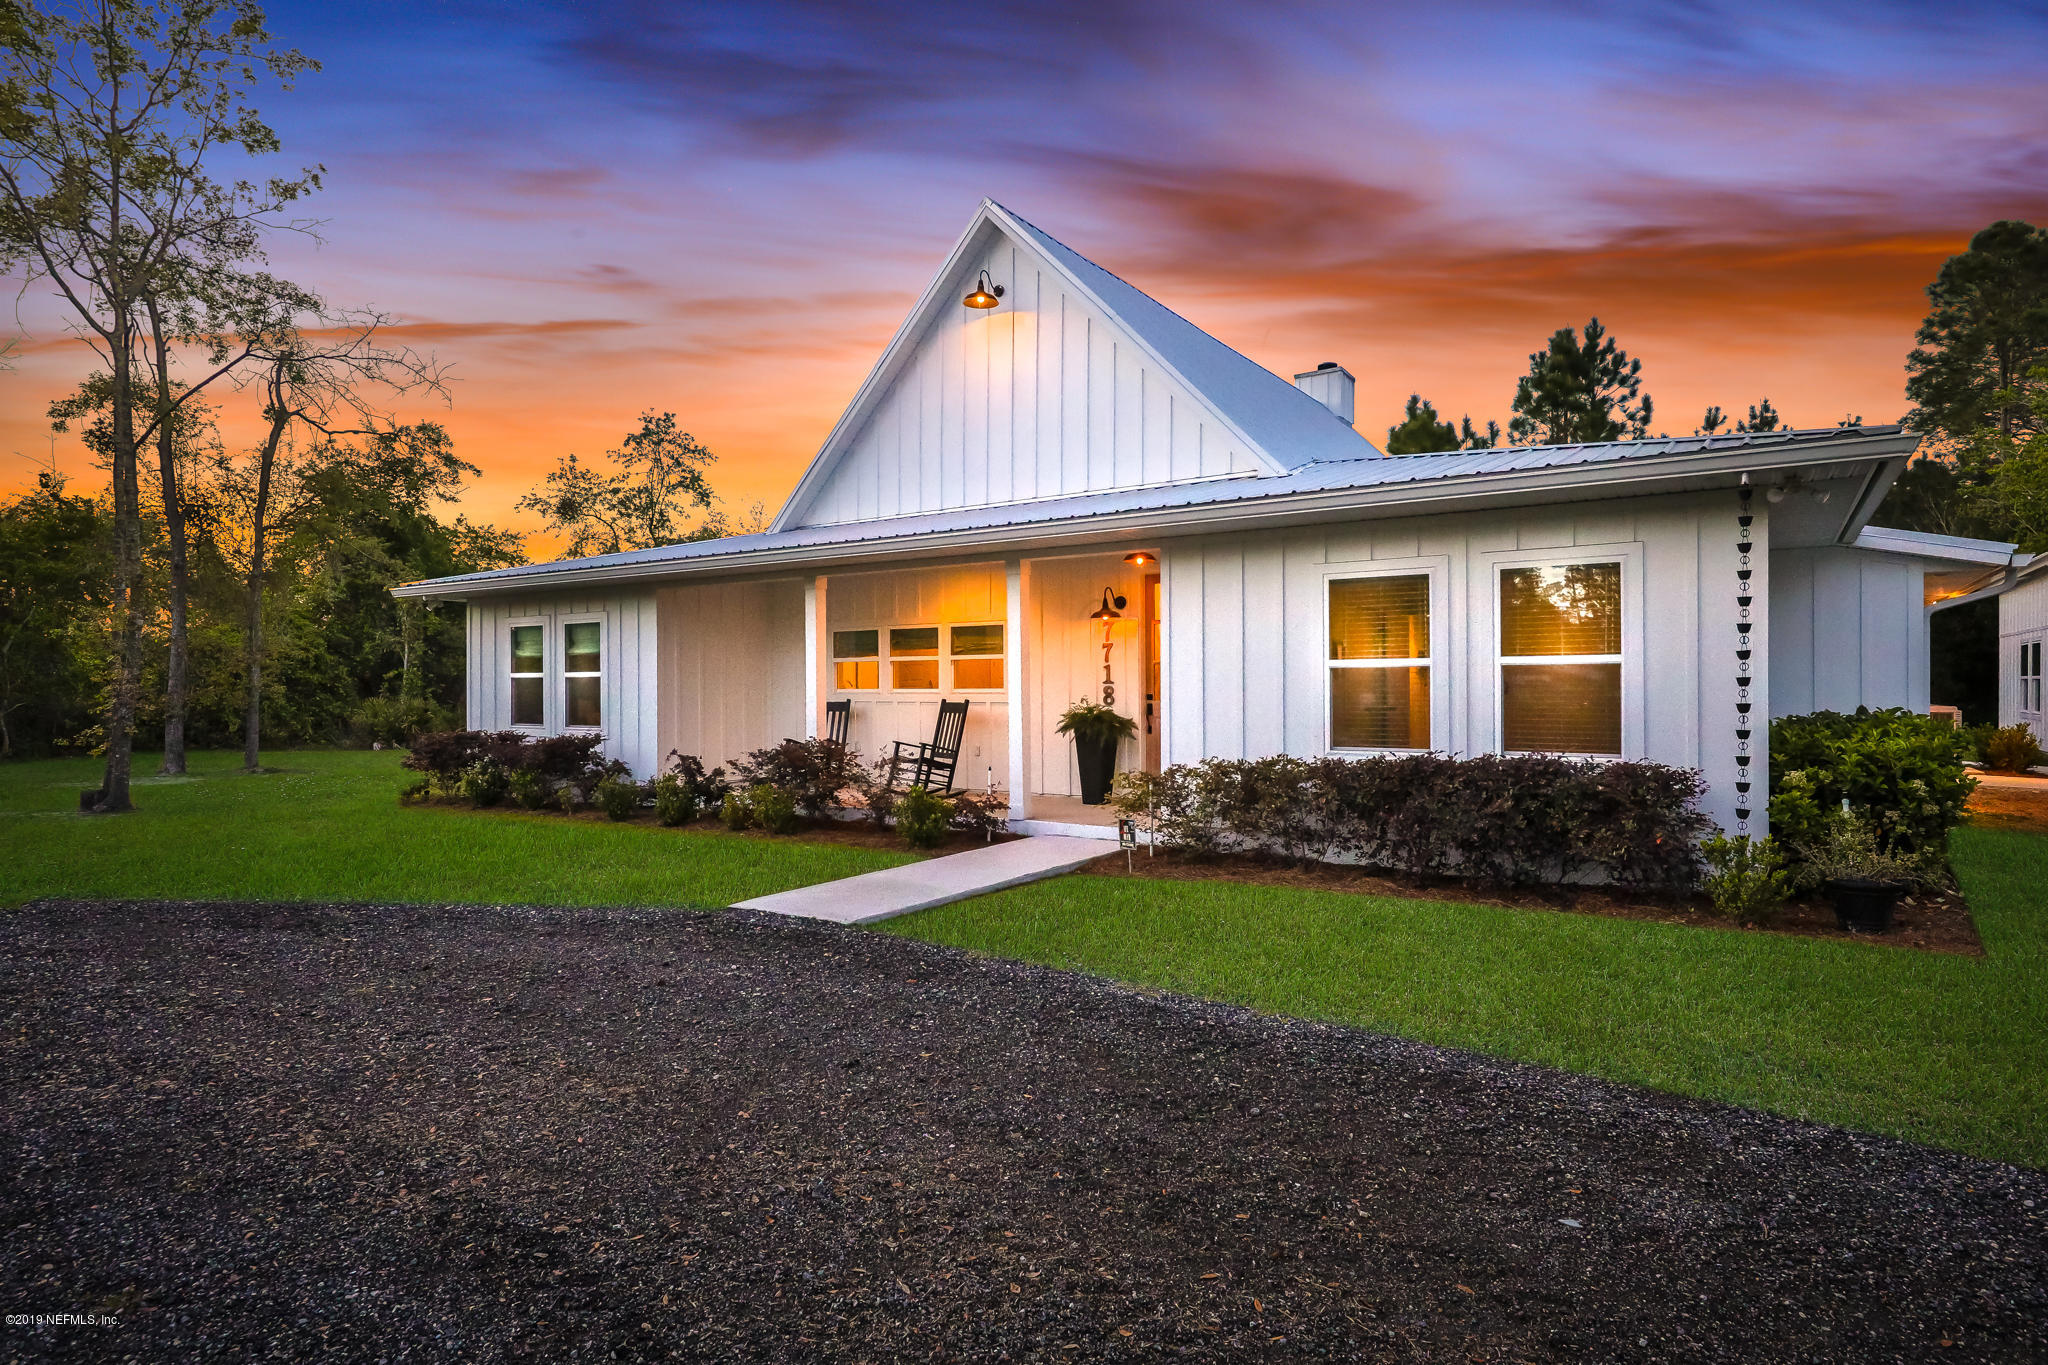 7718 COLEE COVE, ST AUGUSTINE, FLORIDA 32092, 3 Bedrooms Bedrooms, ,2 BathroomsBathrooms,Residential - single family,For sale,COLEE COVE,986356